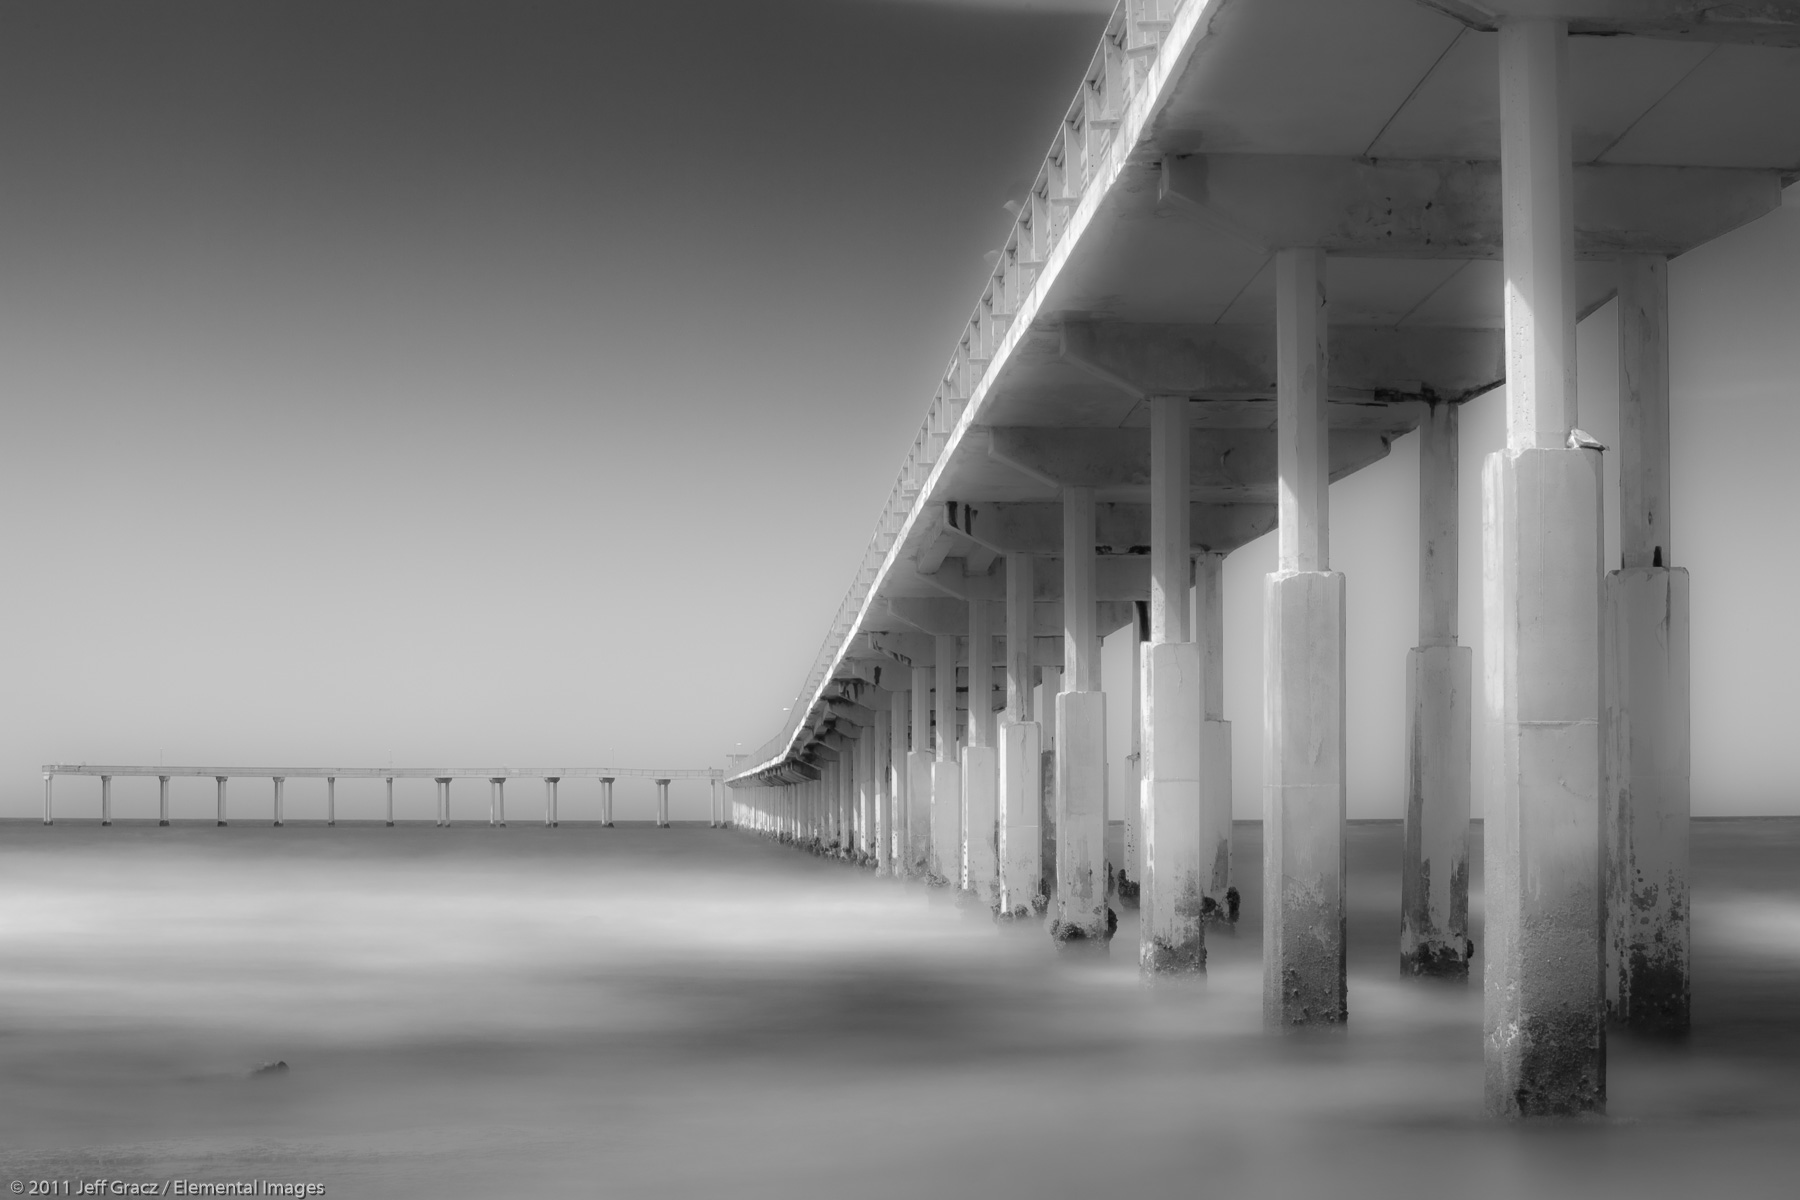 Ocean Beach | San Diego | CA | USA - © © 2011 Jeff Gracz / Elemental Images - All Rights Reserved Worldwide